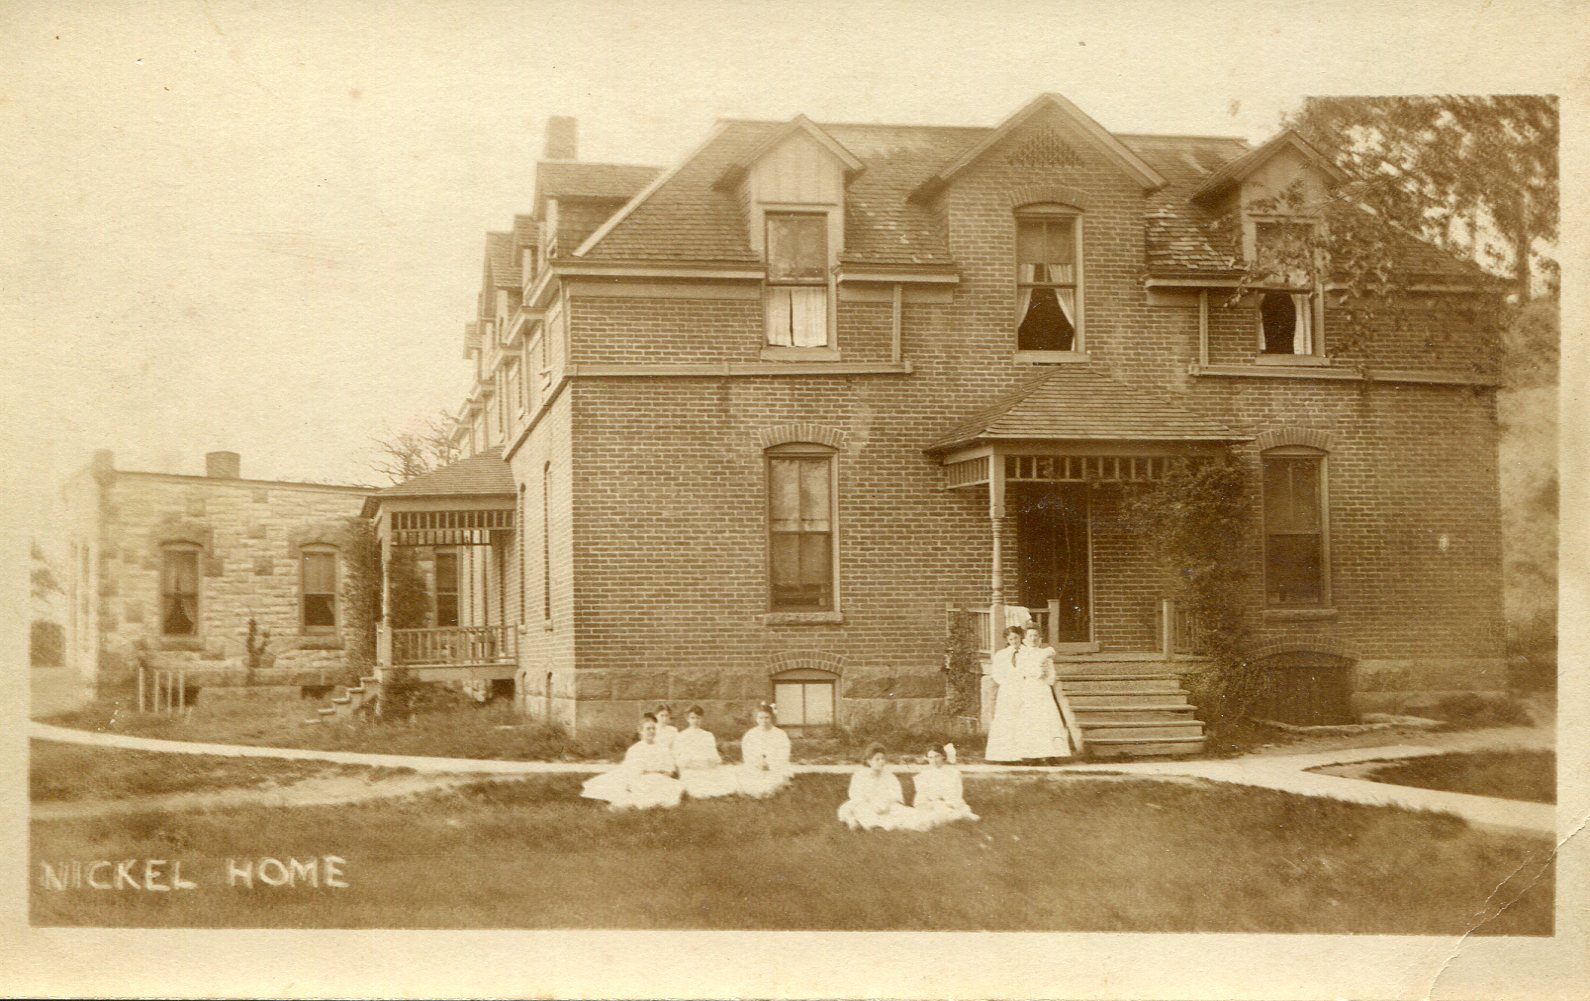 Nickel Hall circa 1900. The building was a women's dorm and laundry building for campus till 1946.